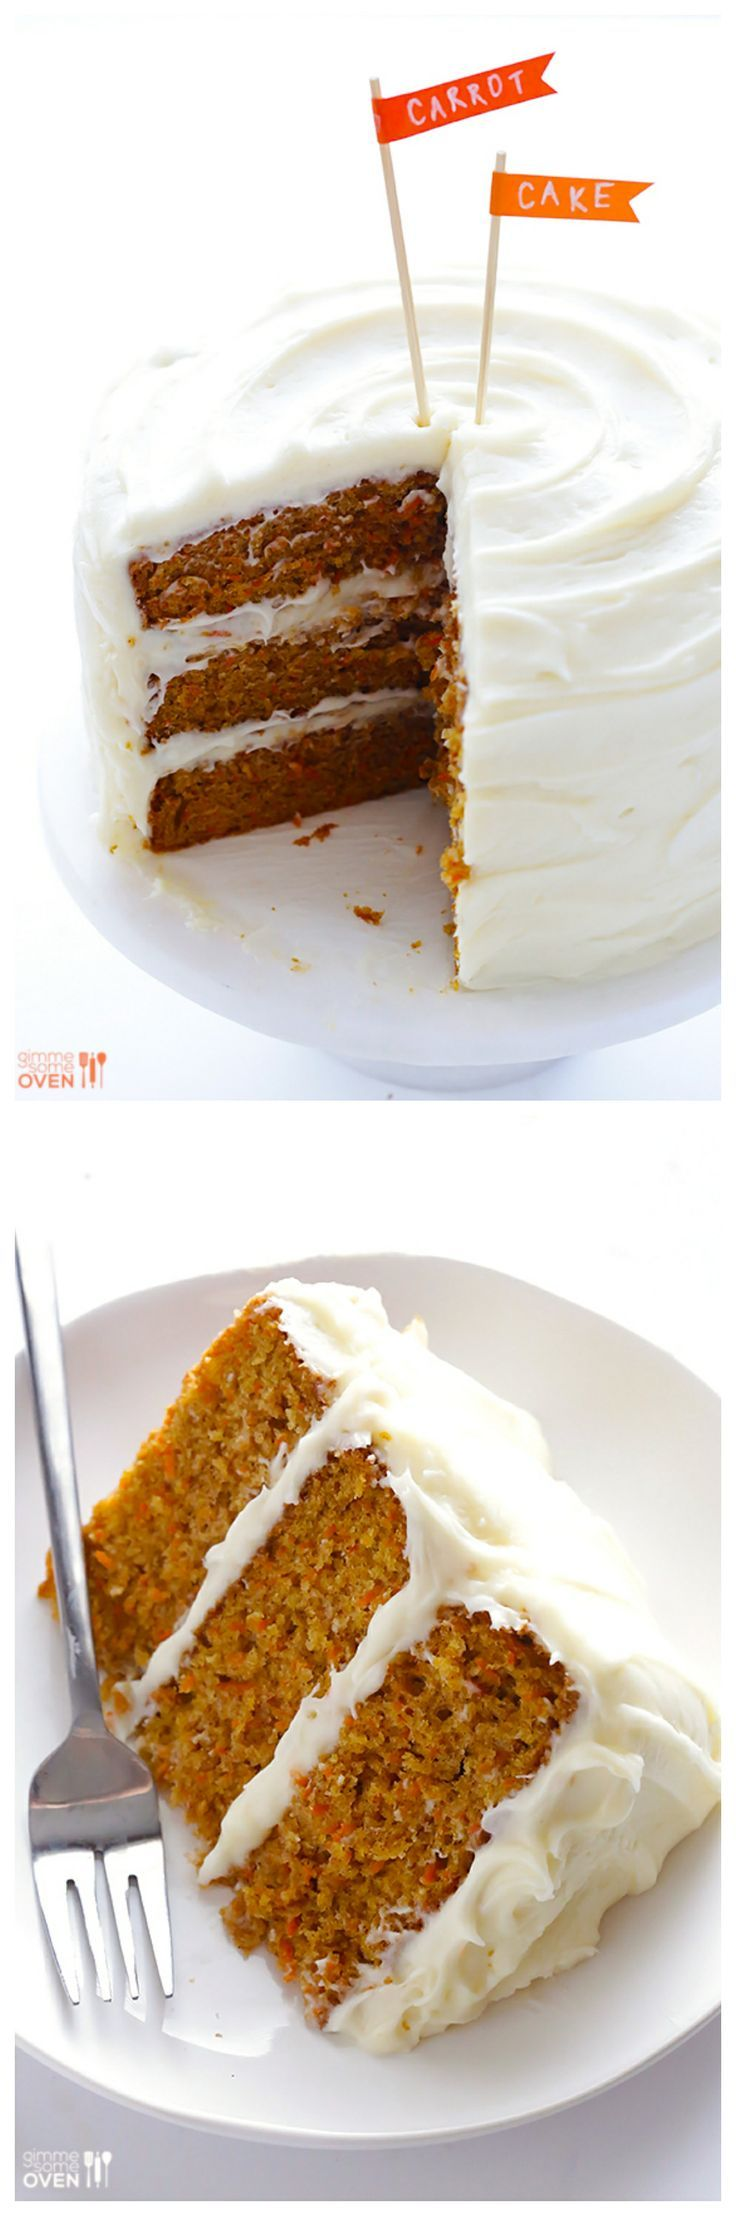 The Best Carrot Cake Recipe Mike S Meal Best Carrot